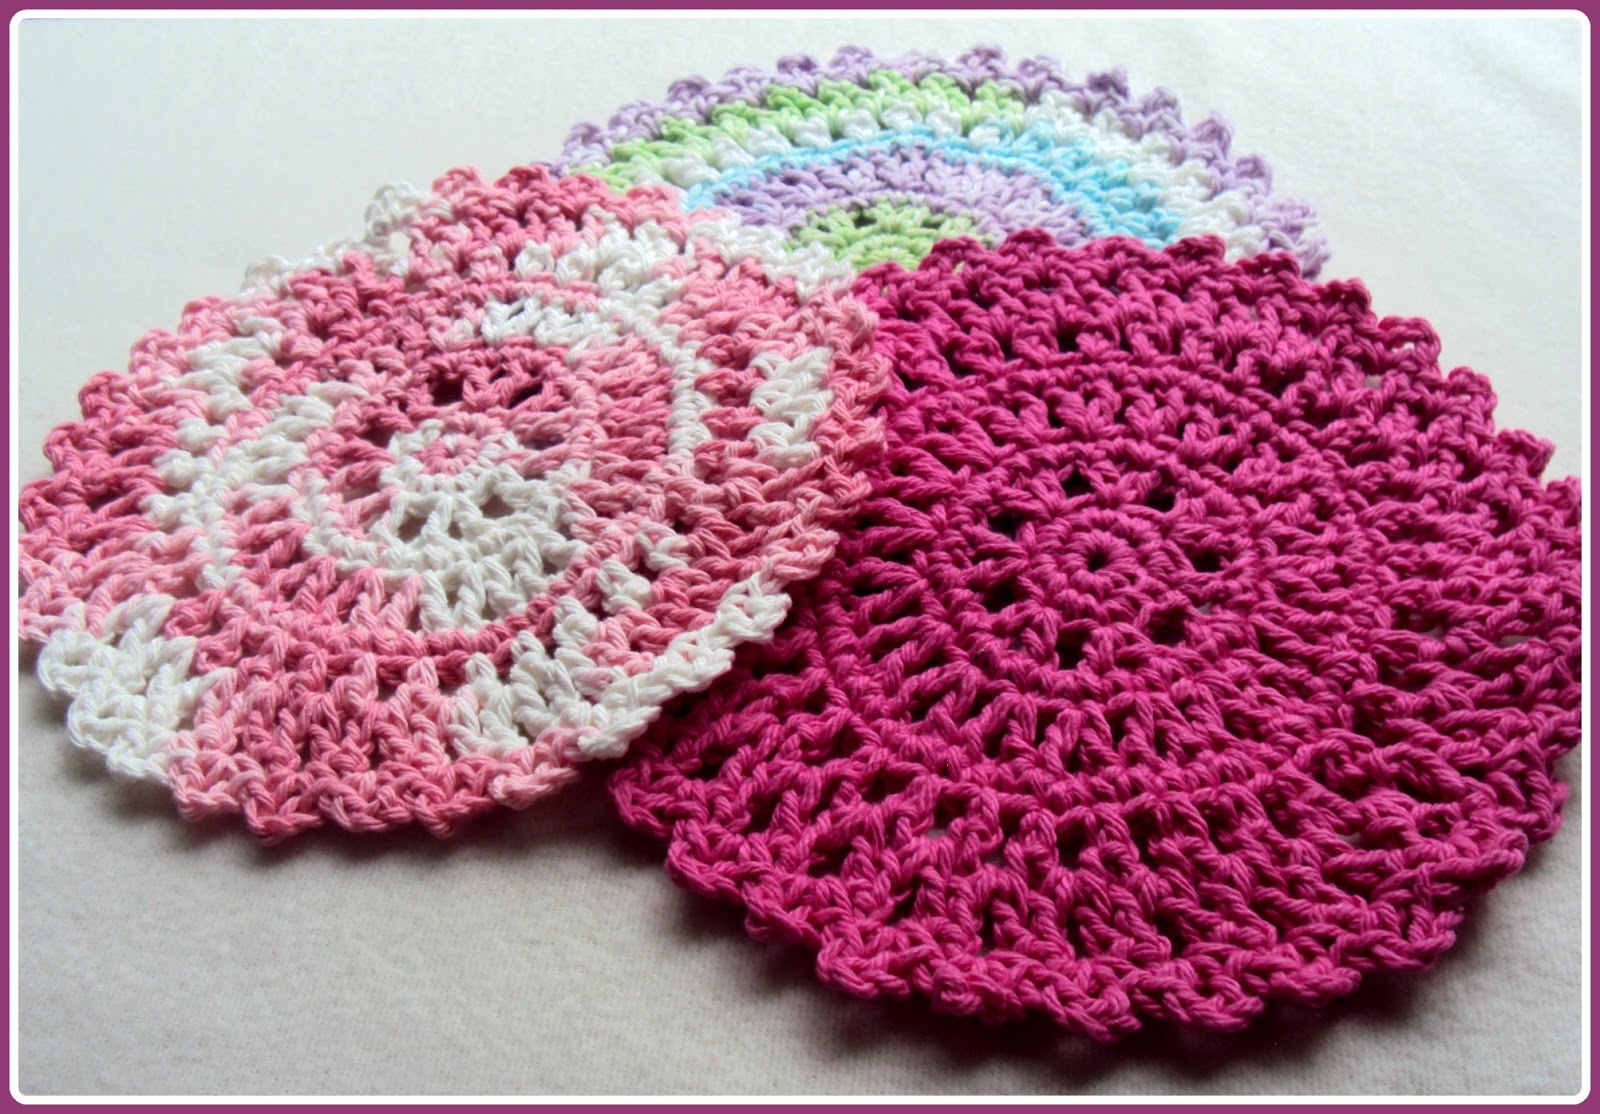 Free Crochet Yarn : ... up quickly and beautifully when using both acrylic or cotton yarns